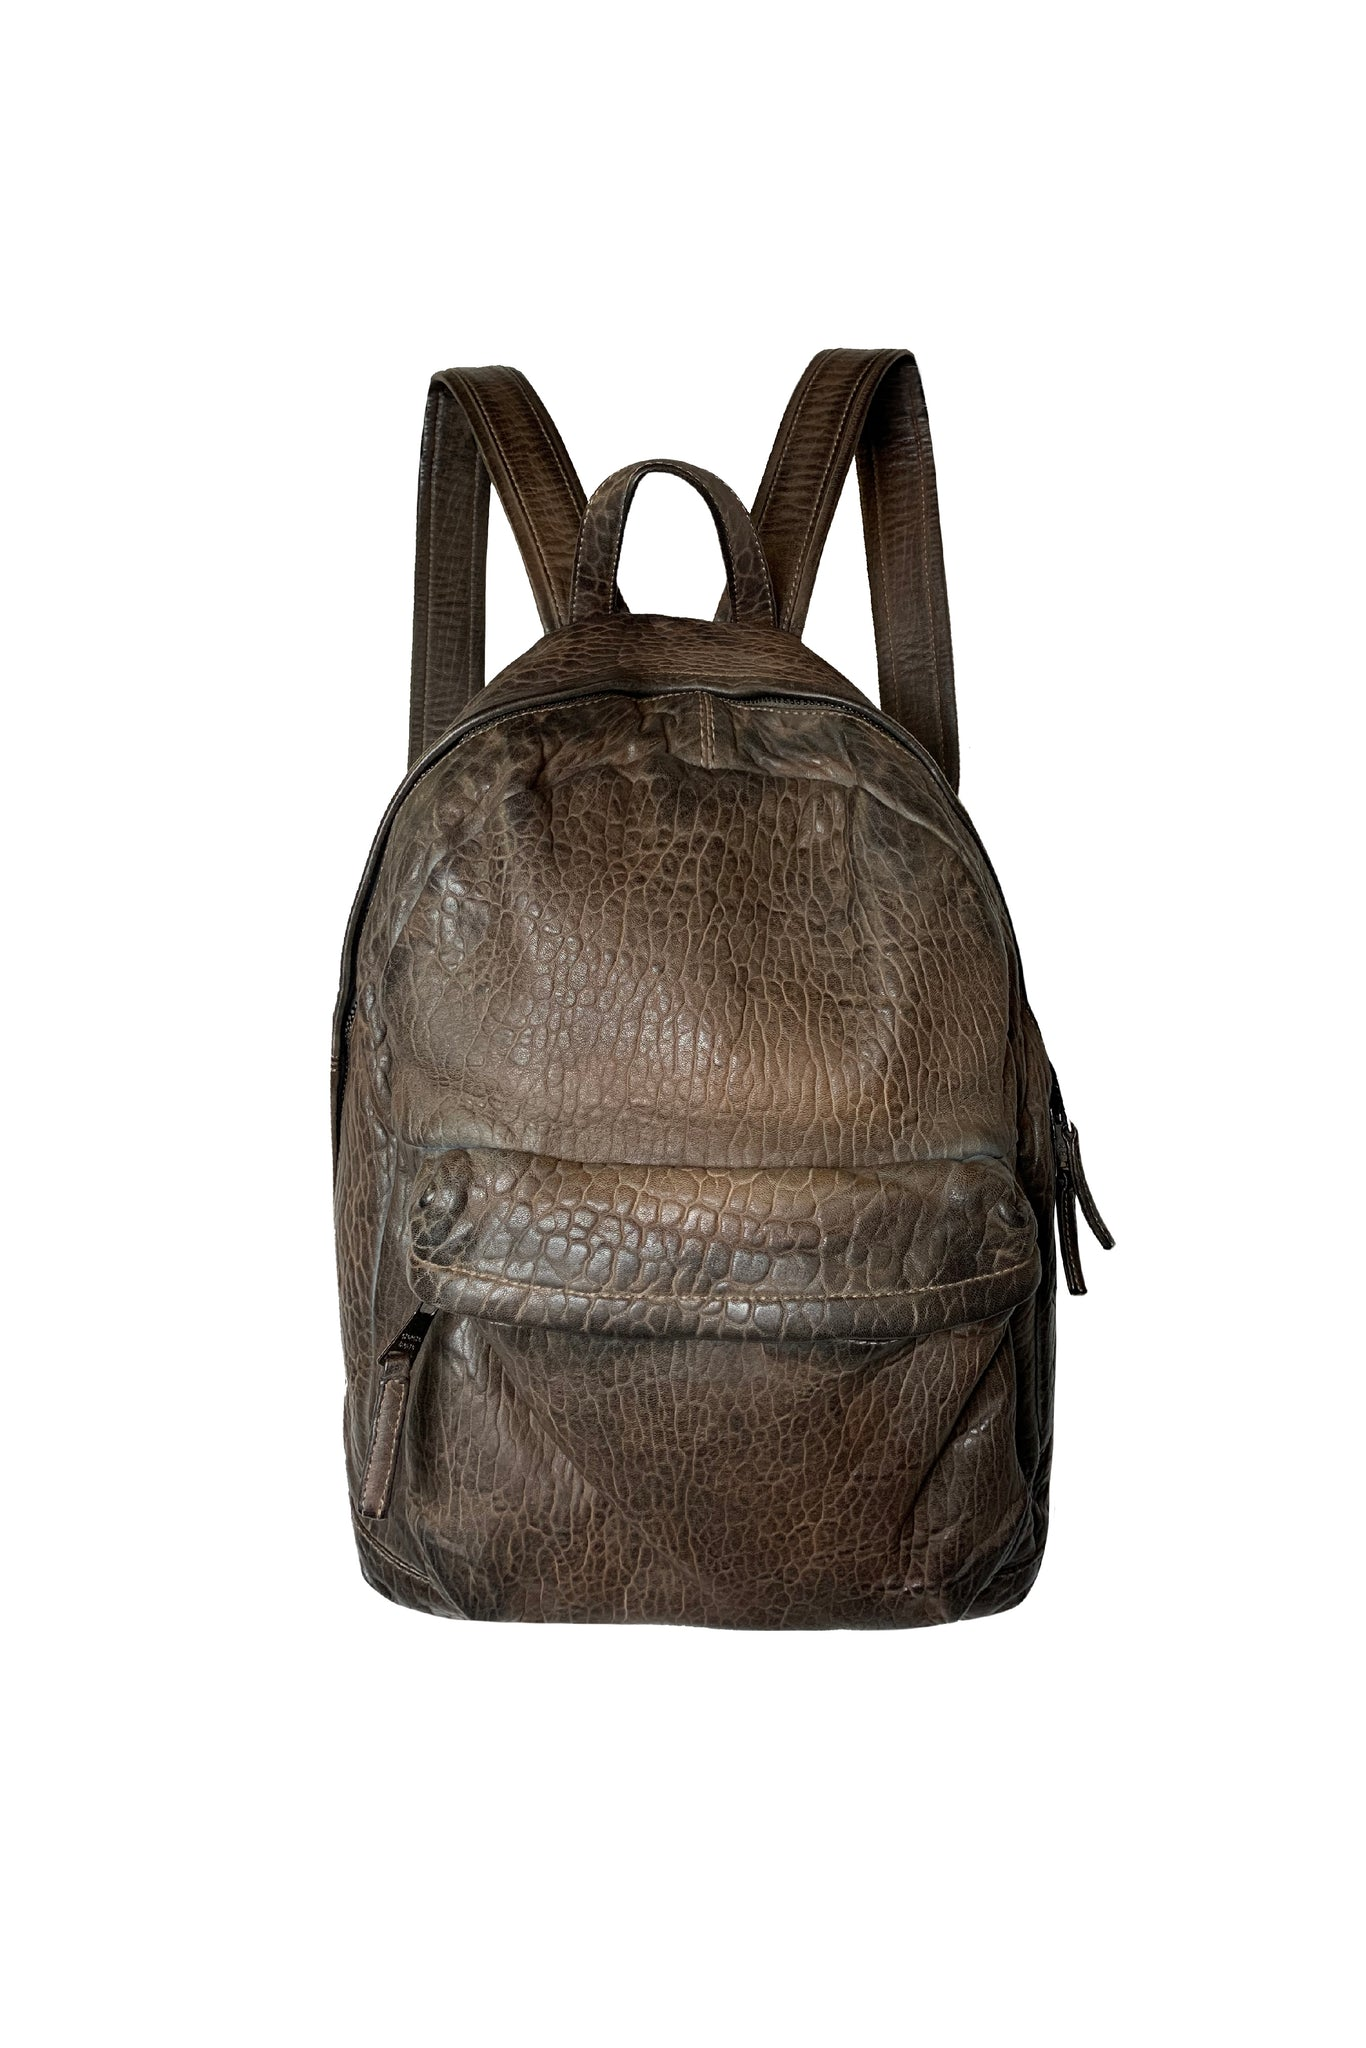 Giorgio Brato Pebbled Leather Backpack  - Cacao